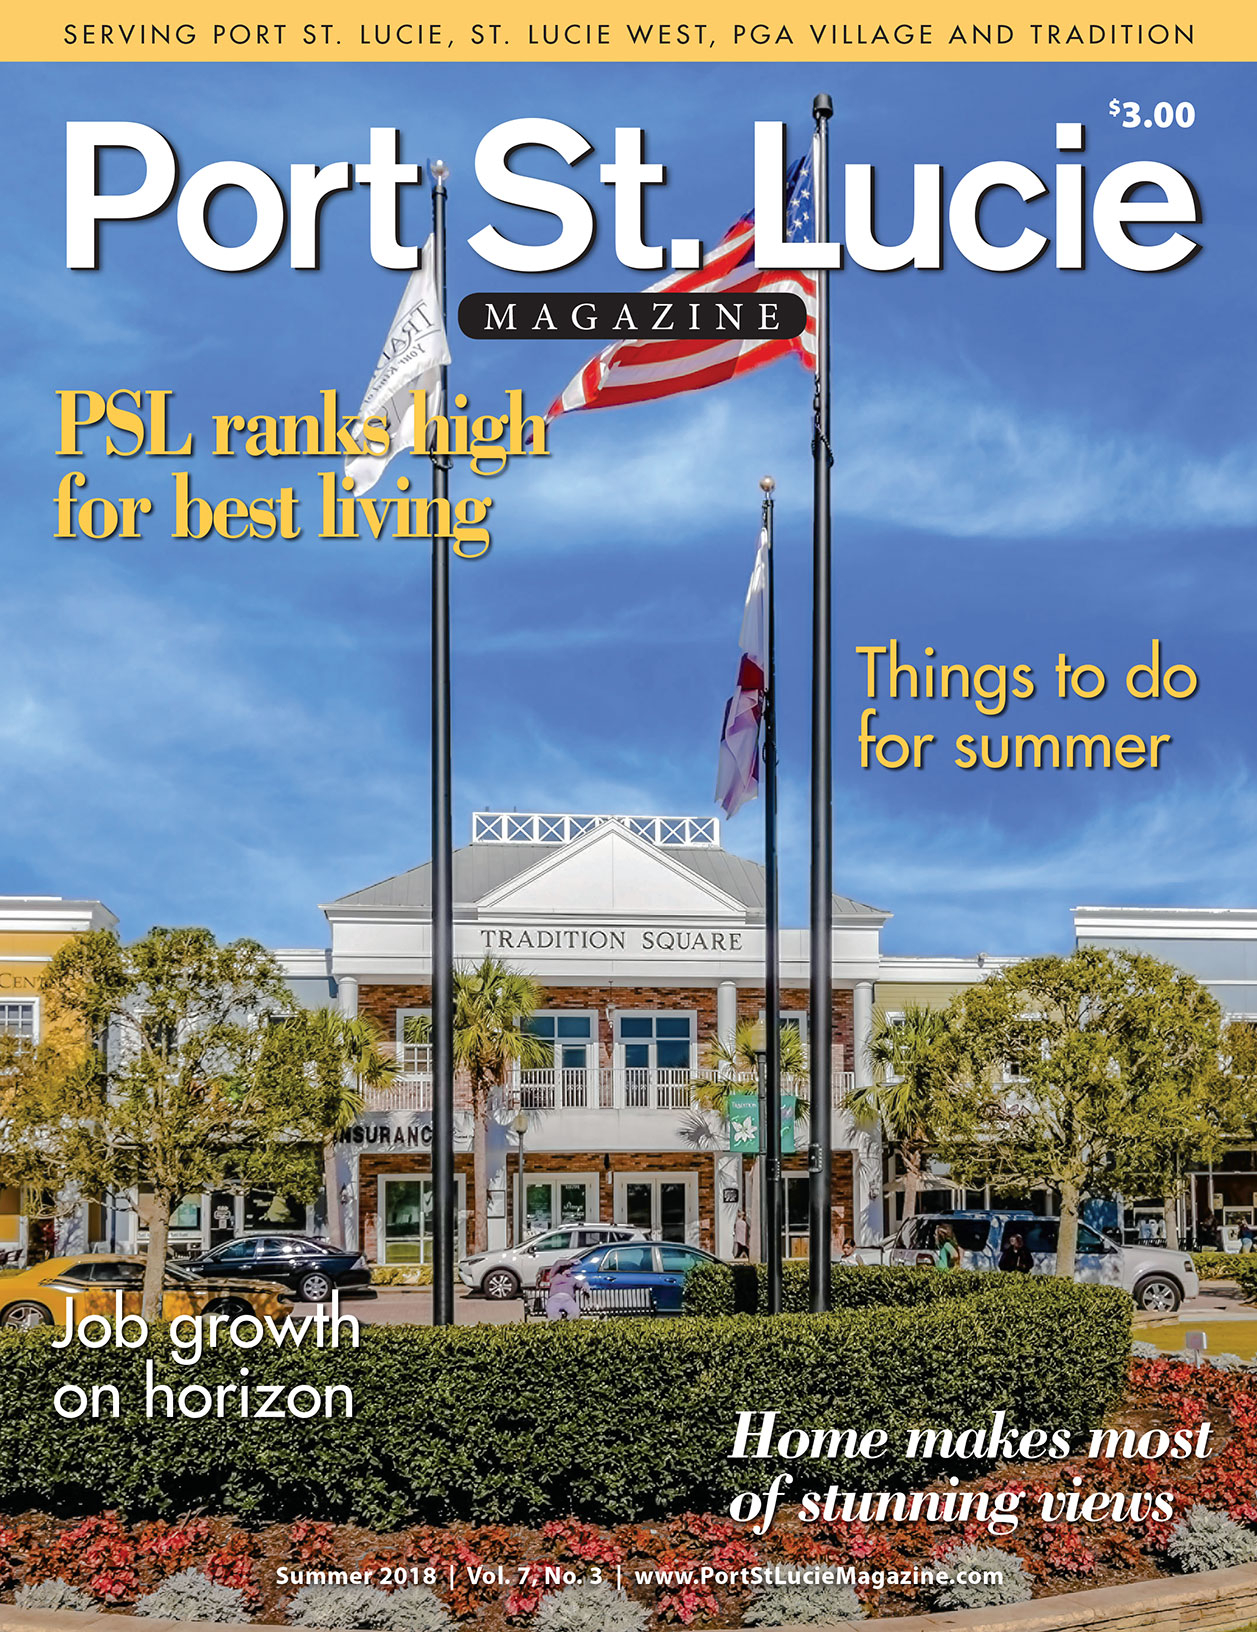 Port St. Lucie Magazine - Vol. 7, No. 1